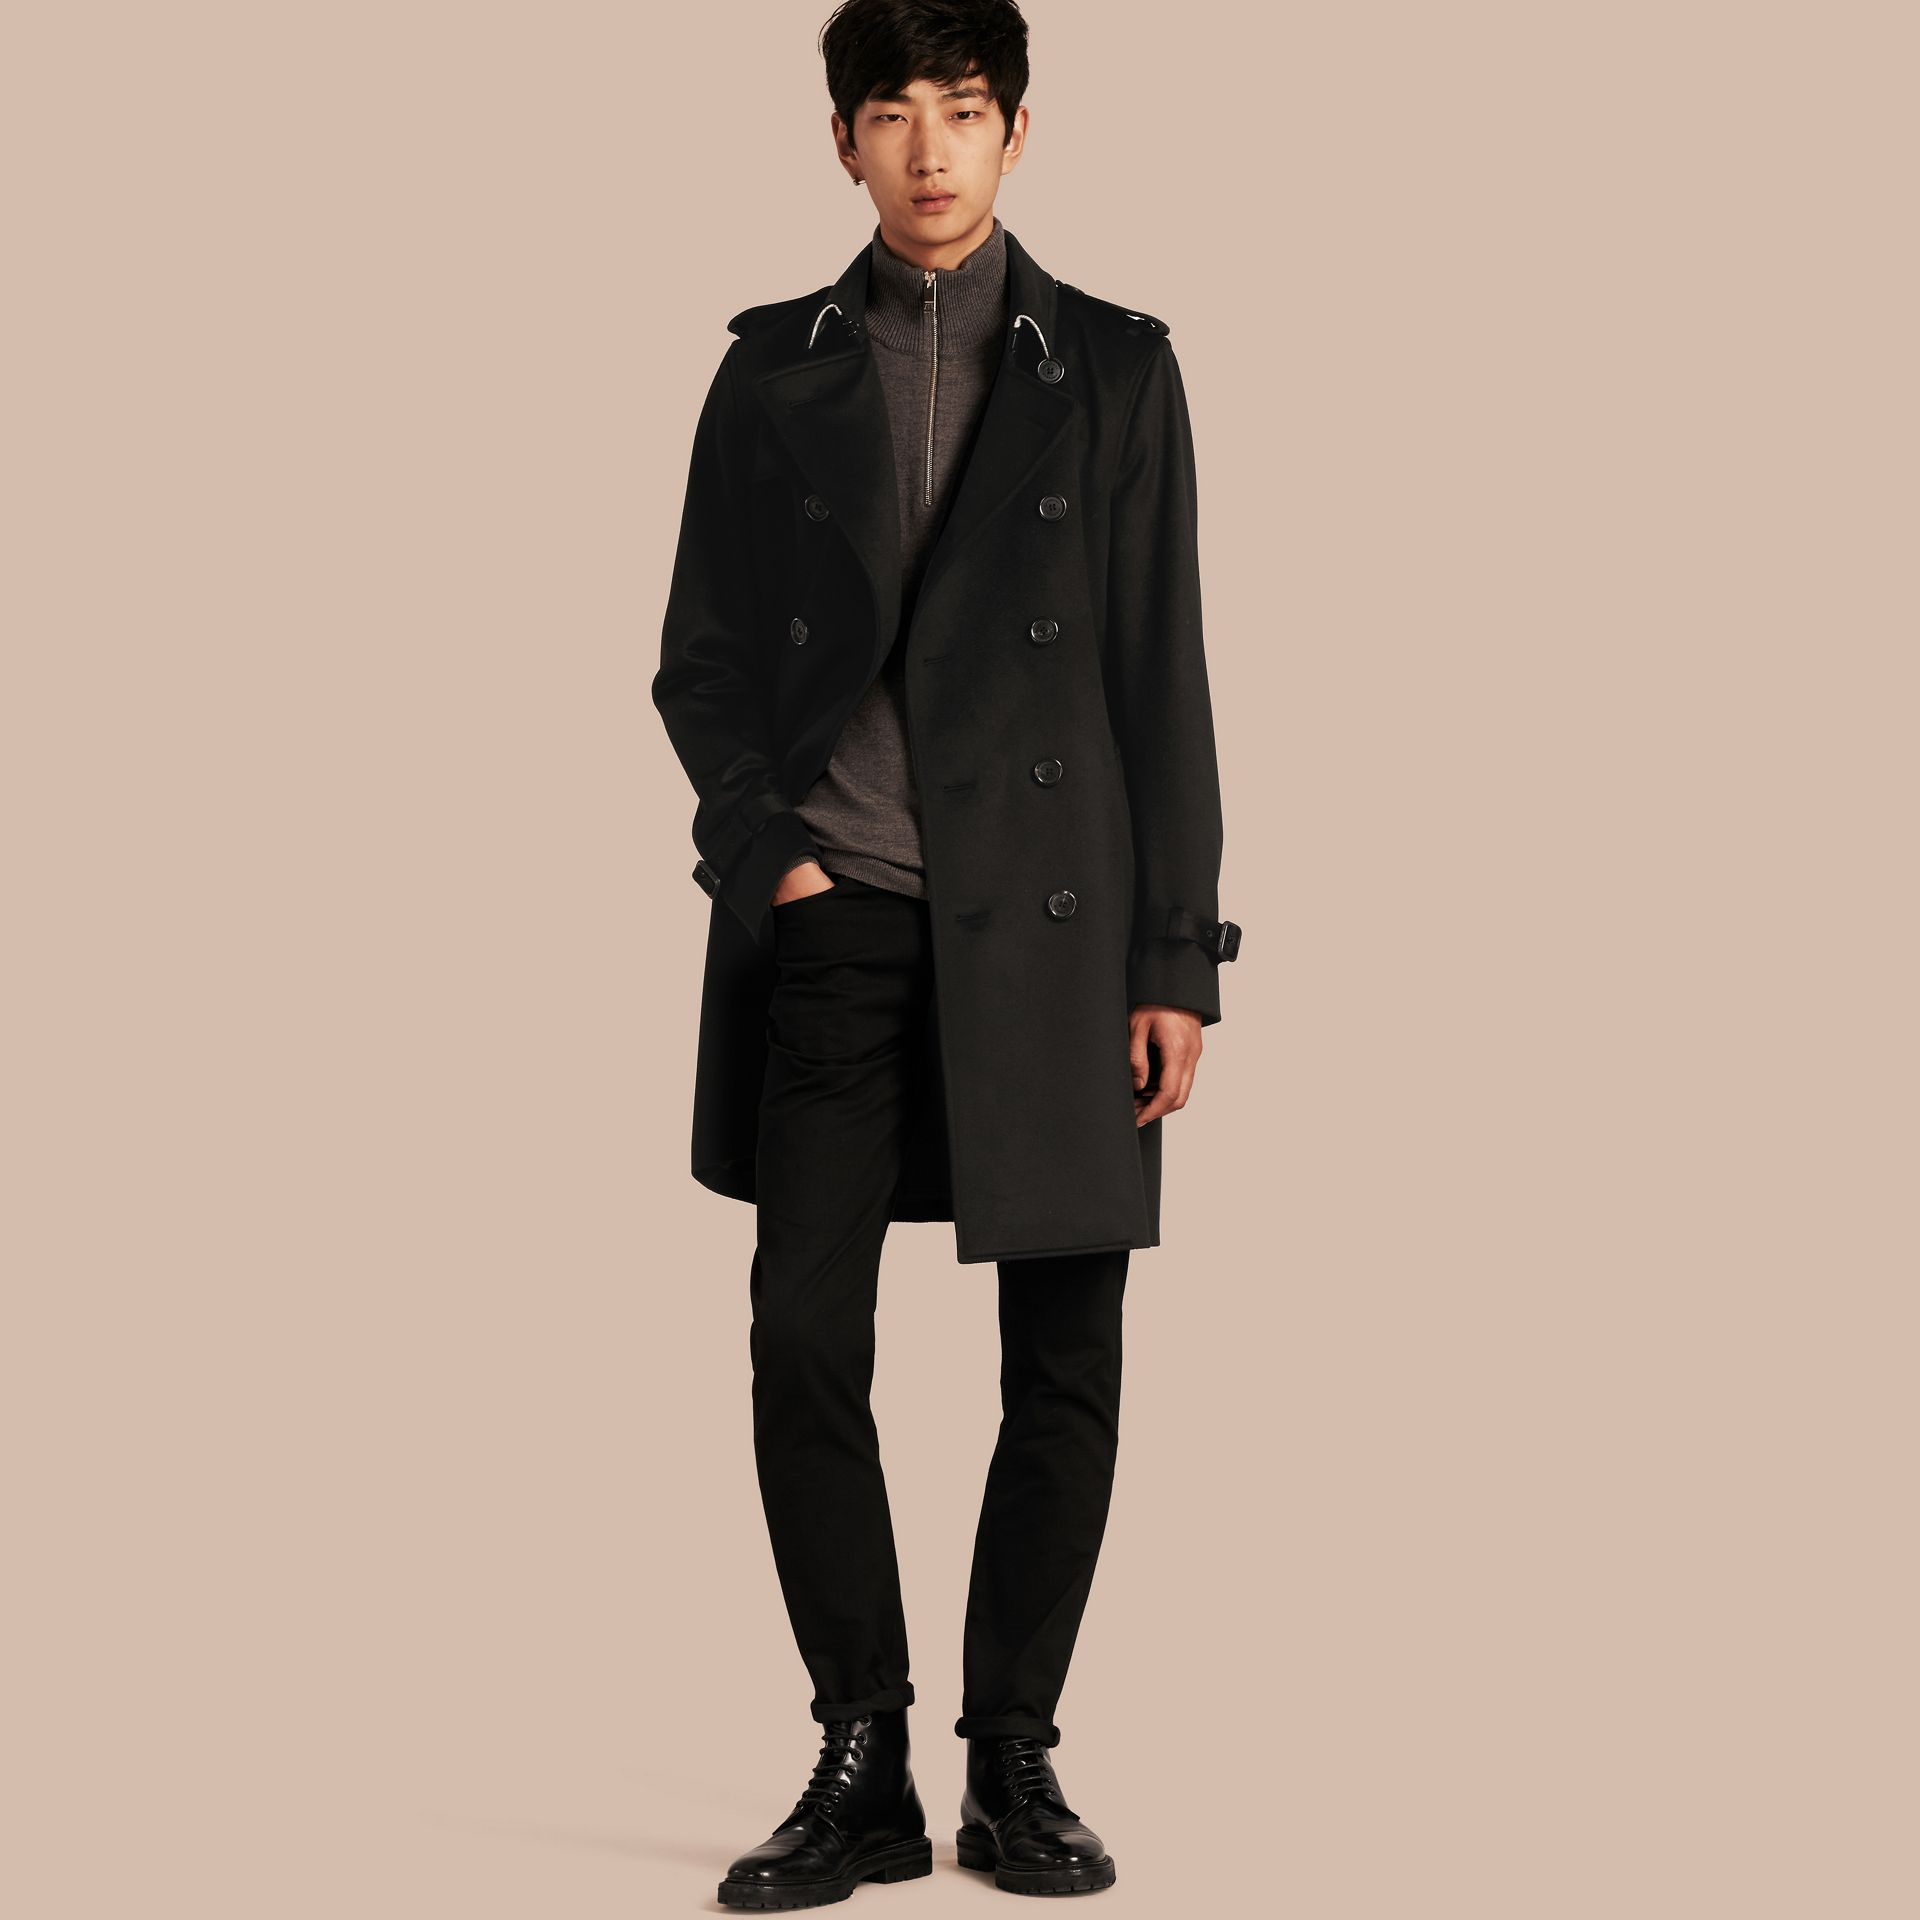 Cashmere Trench Coat in Black - Men | Burberry United States - gallery image 8